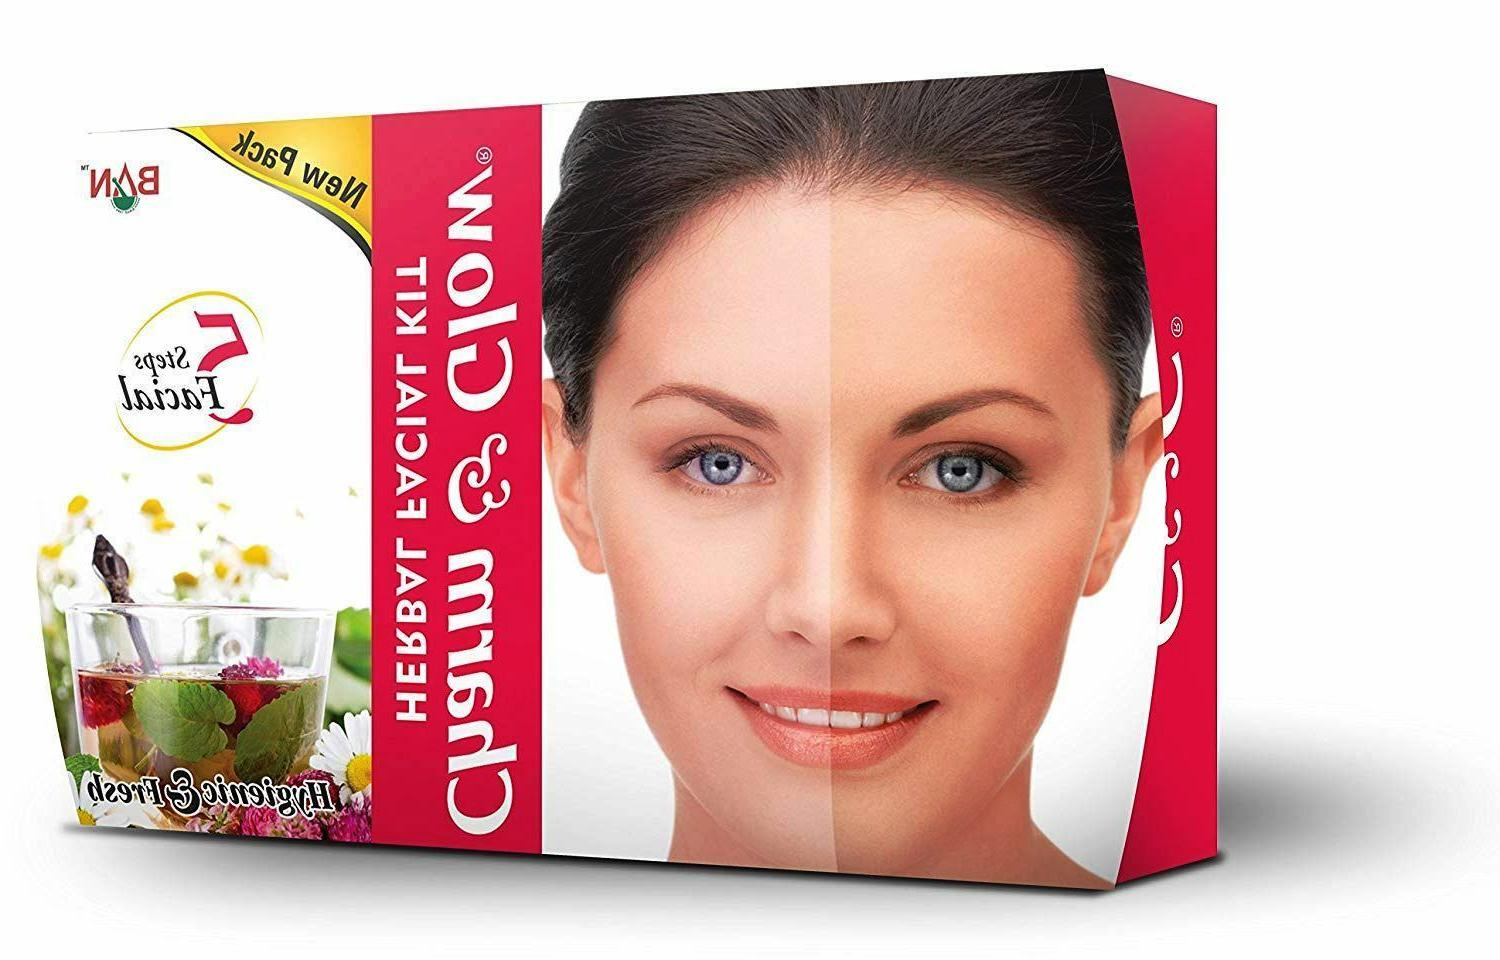 Charm & Glow Herbal Facial 5 Step Facial Kit Travel Size Bes